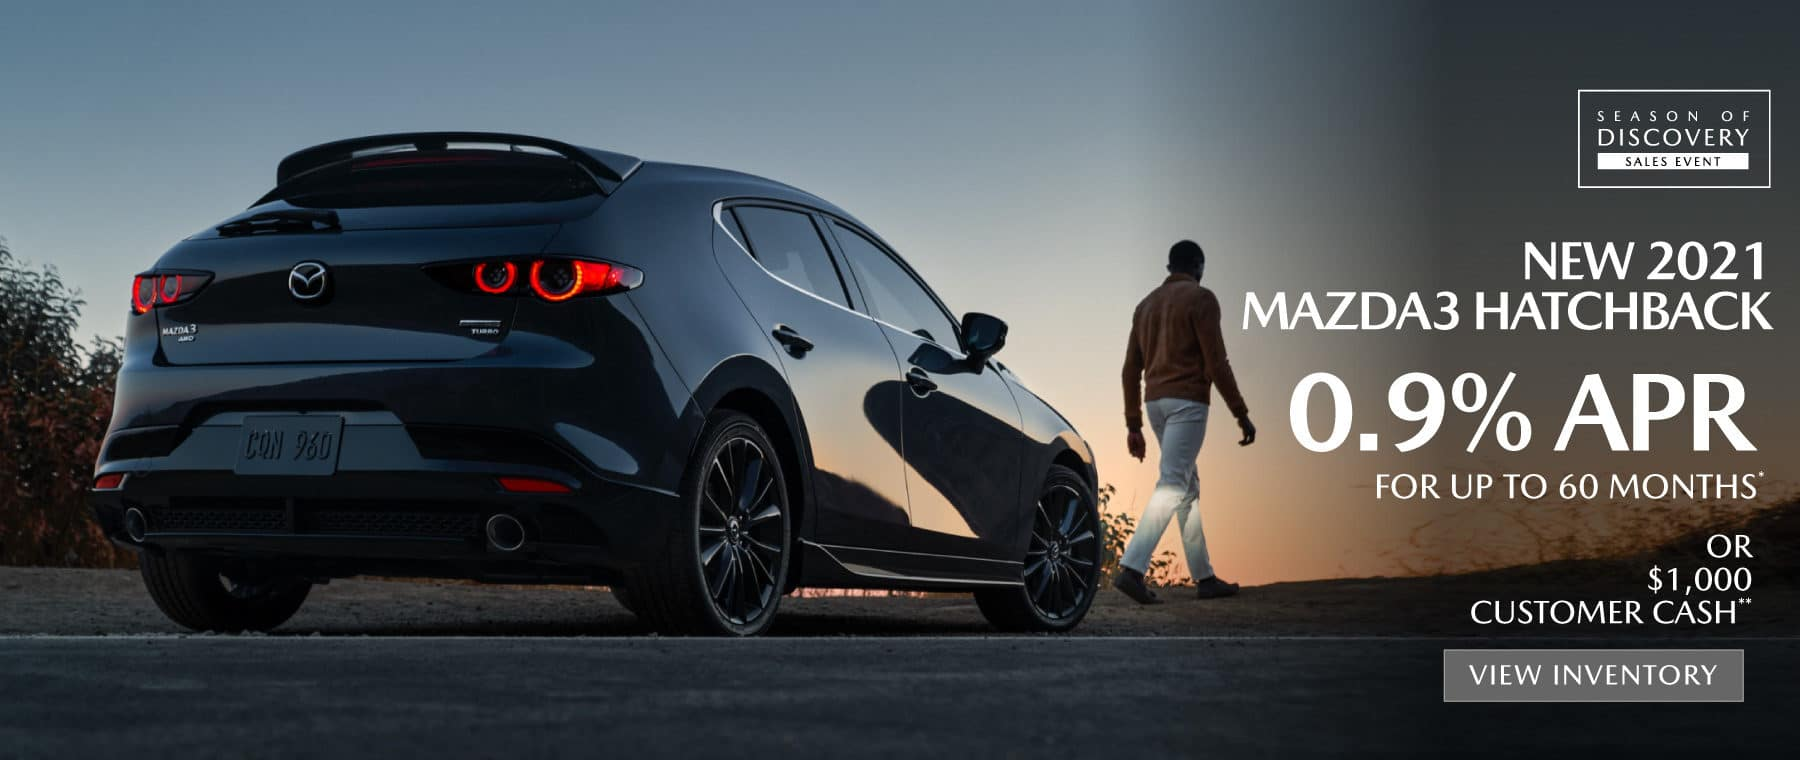 2021 Mazda3 Hatchback   0.9% APR for 60 months   View Inventory